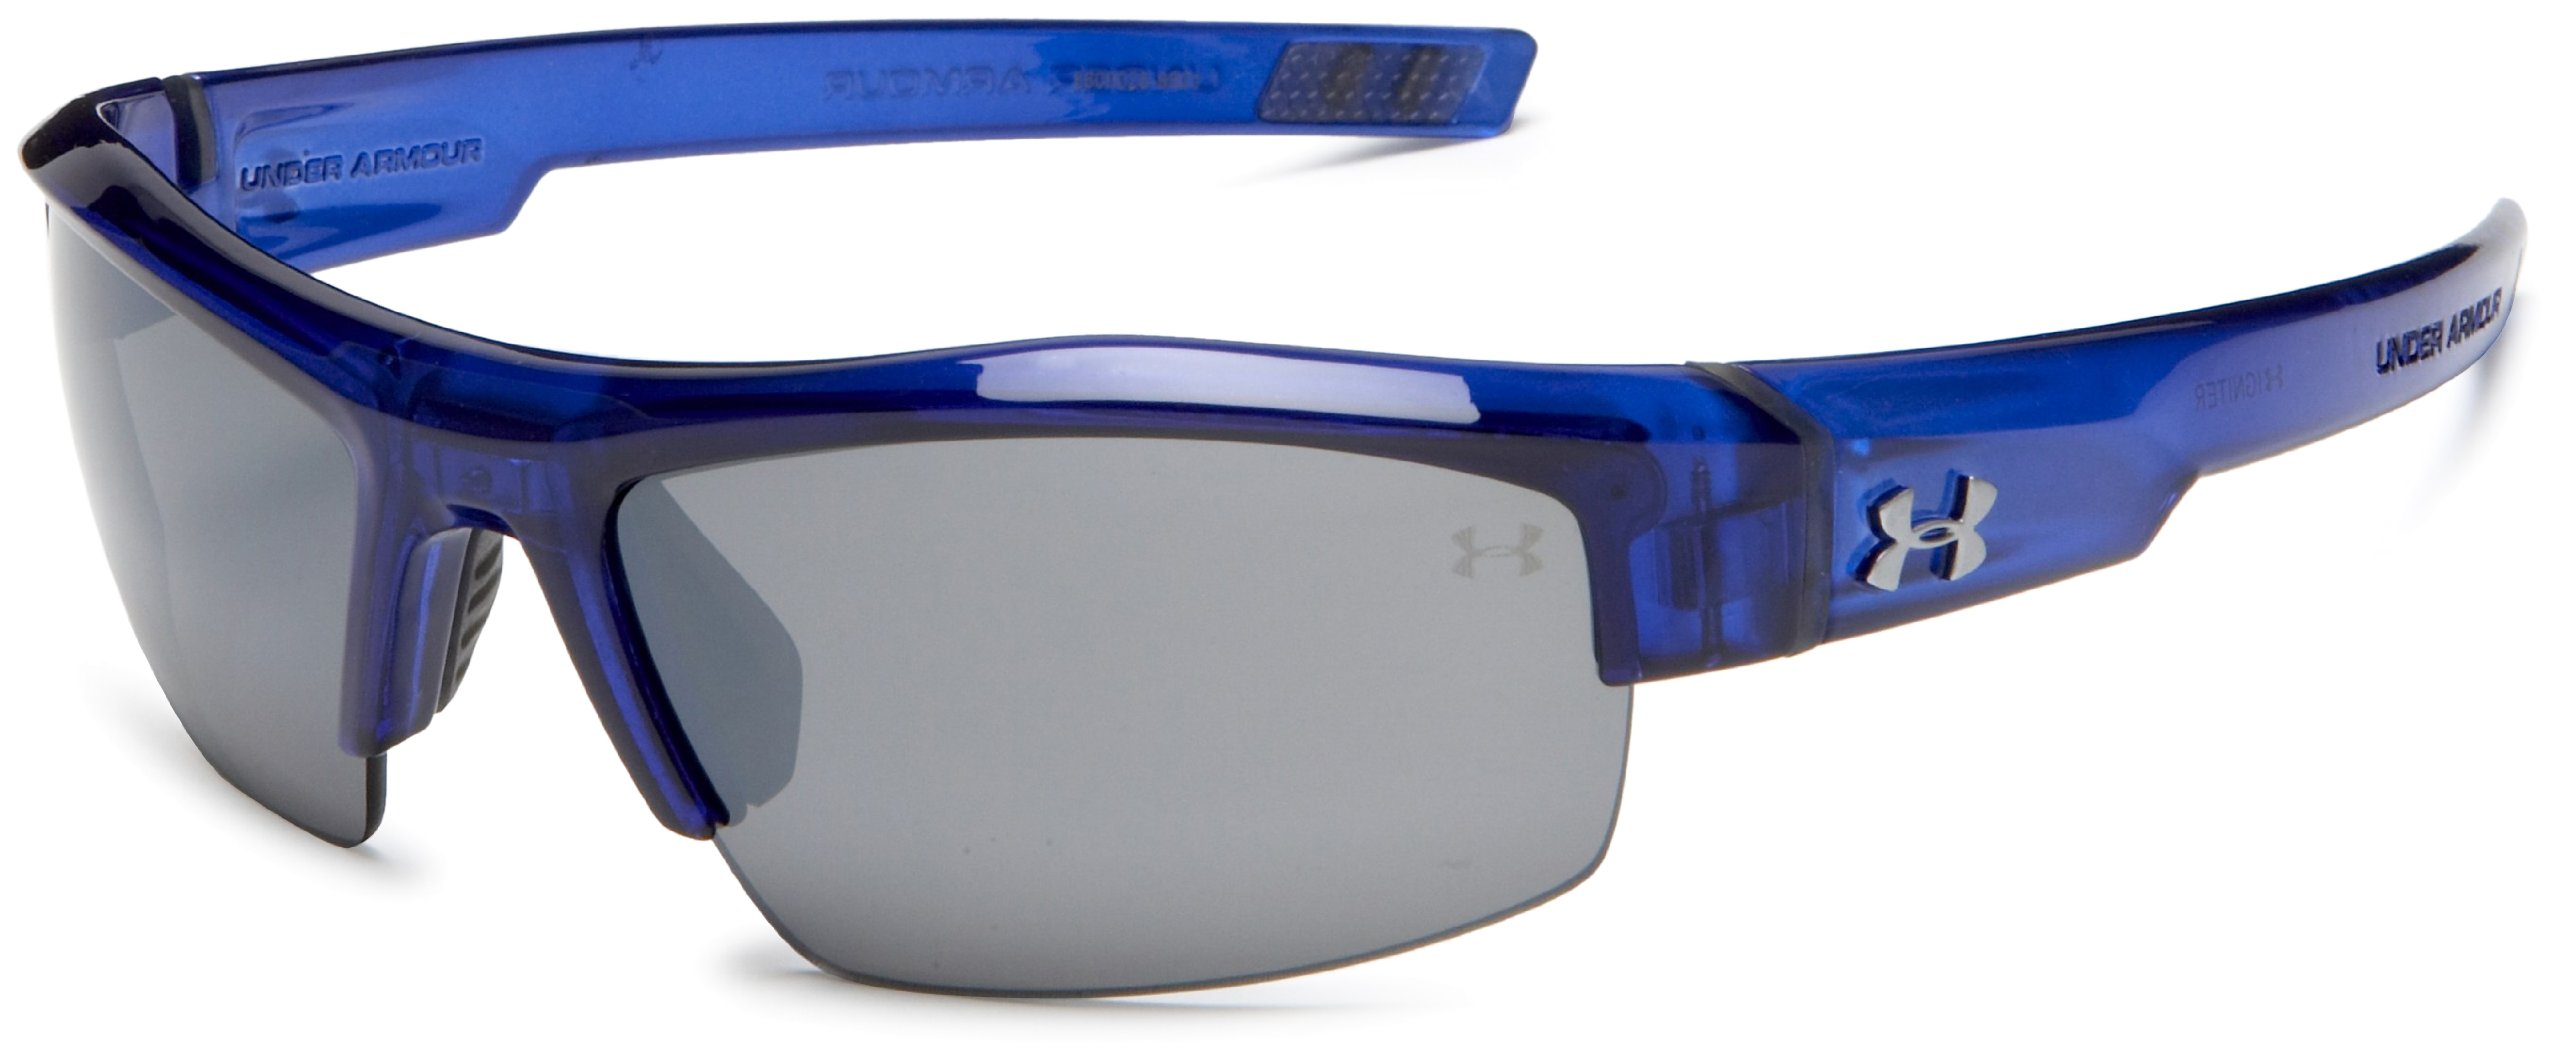 Under Armour Igniter Multiflection Rectangular Sunglasses, Crystal Royal Blue Frame/Gray Lens, one size